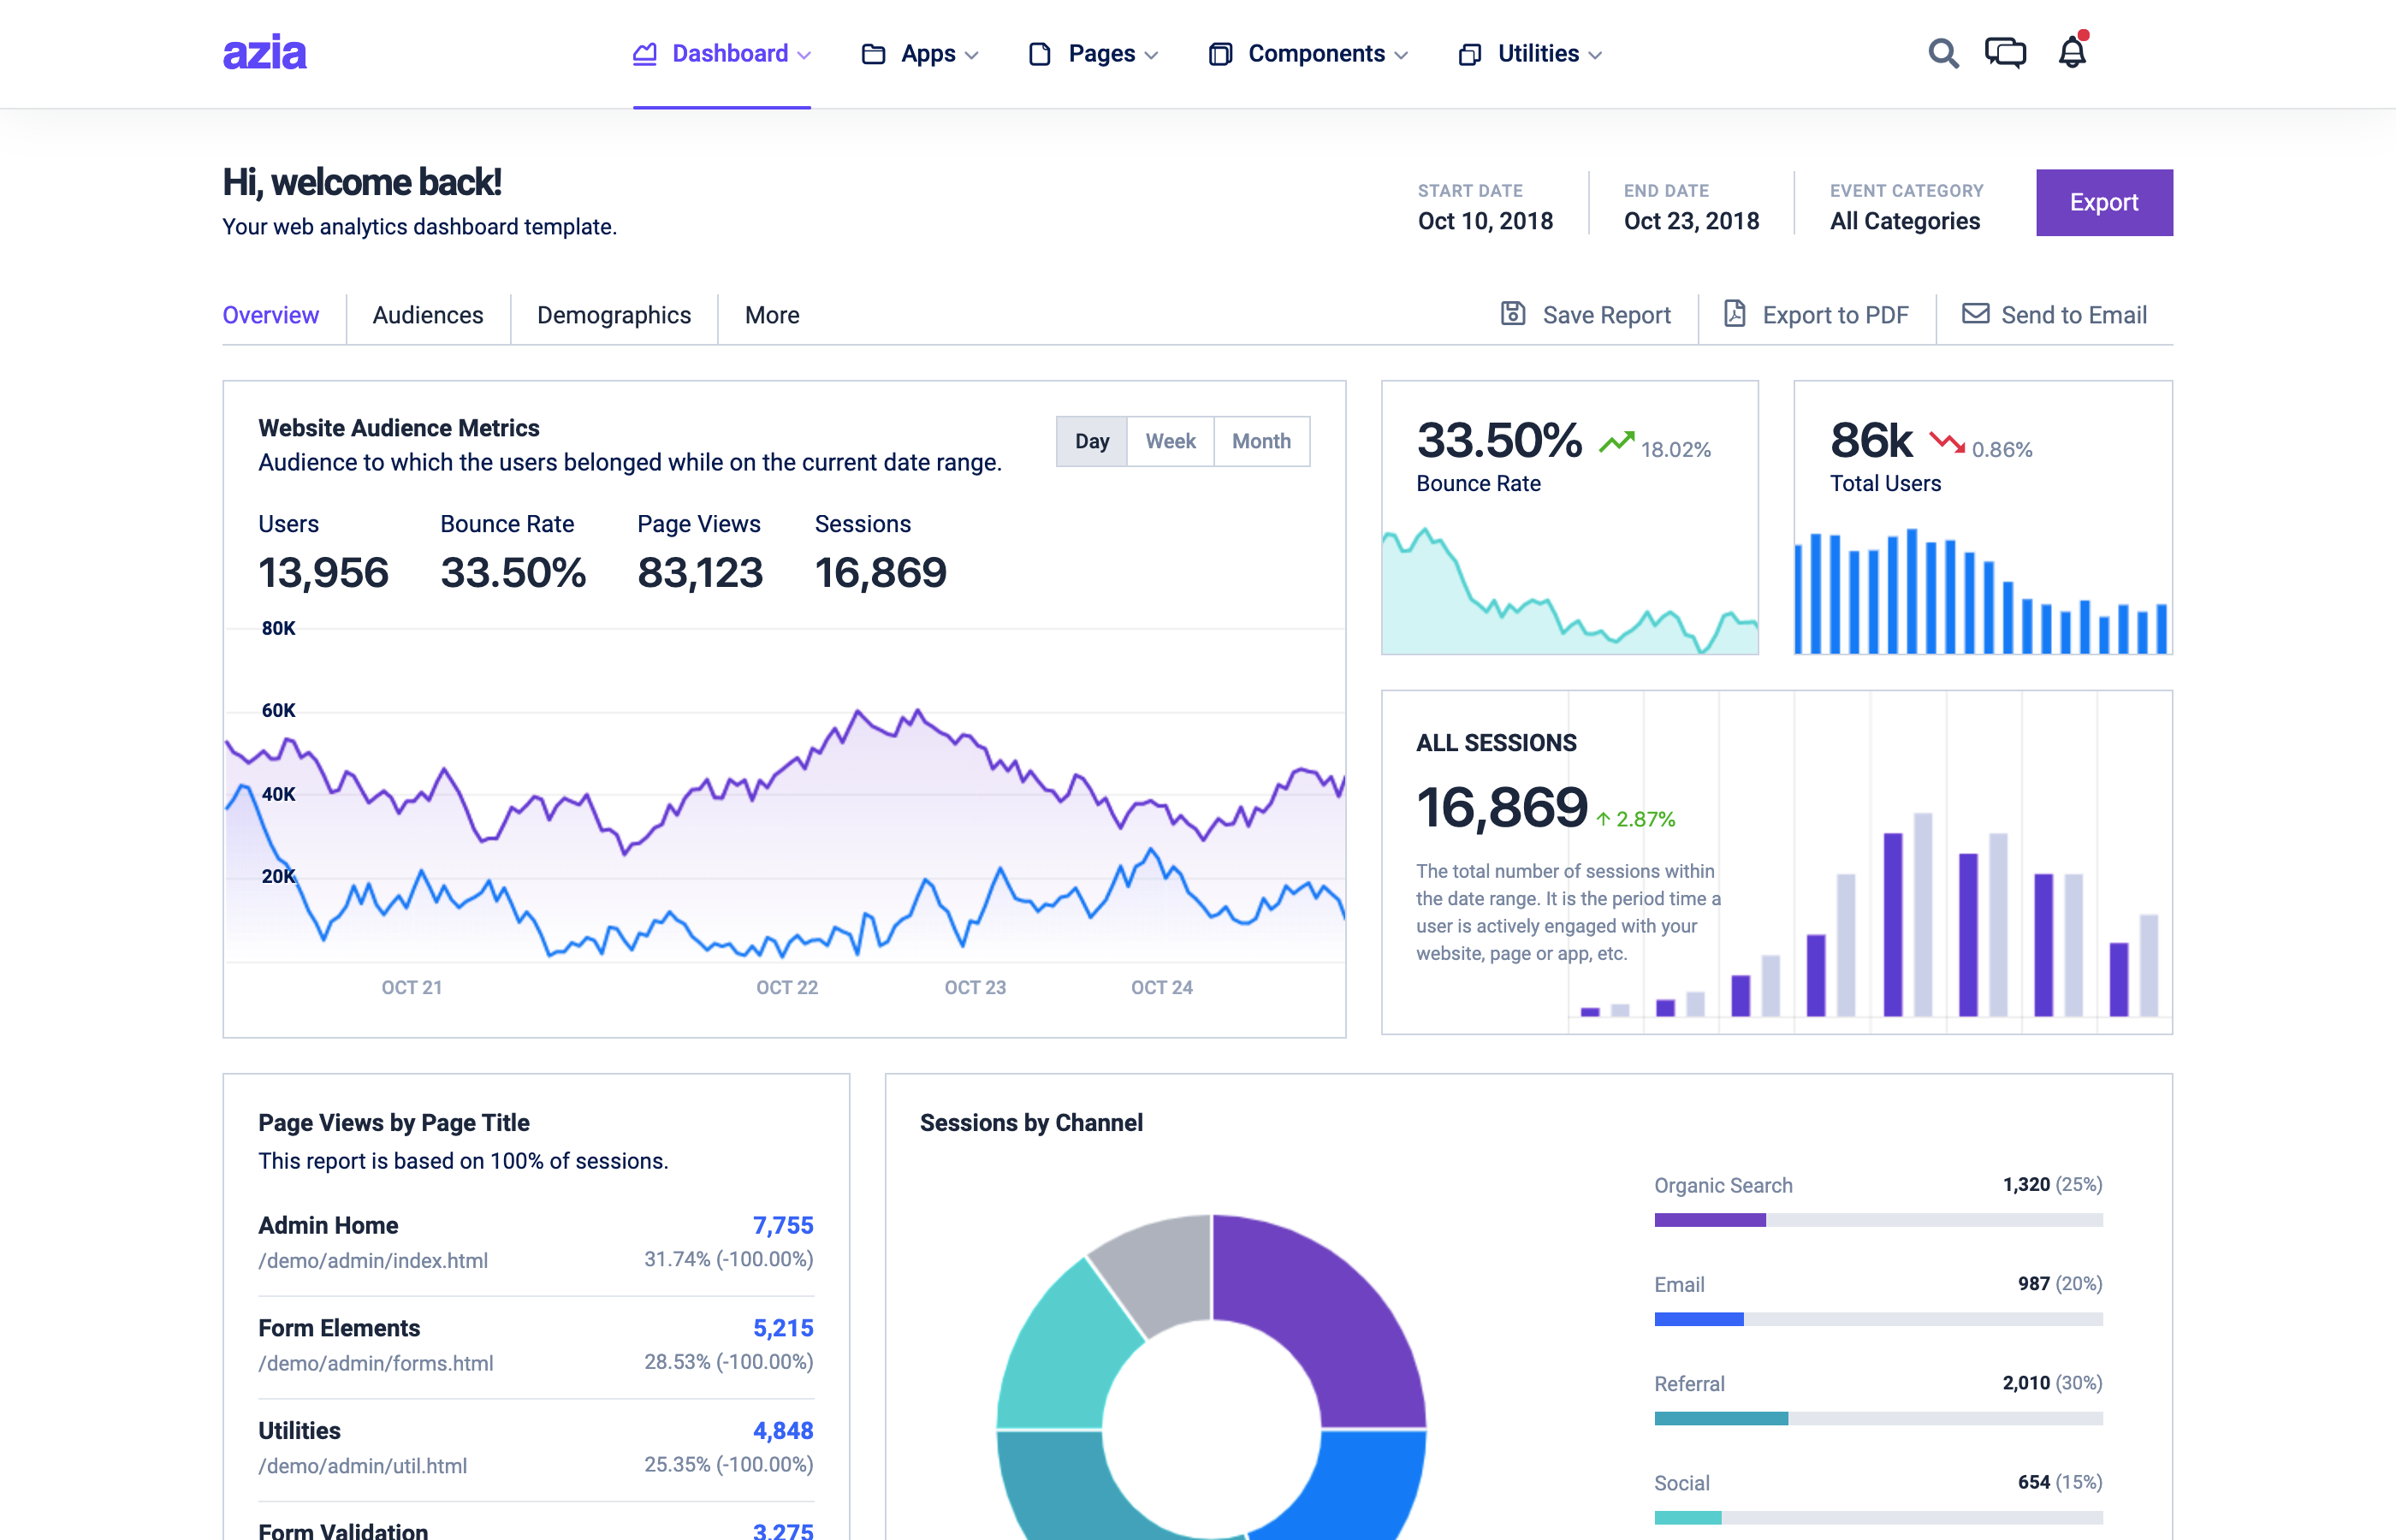 azia web Analytics dashboard